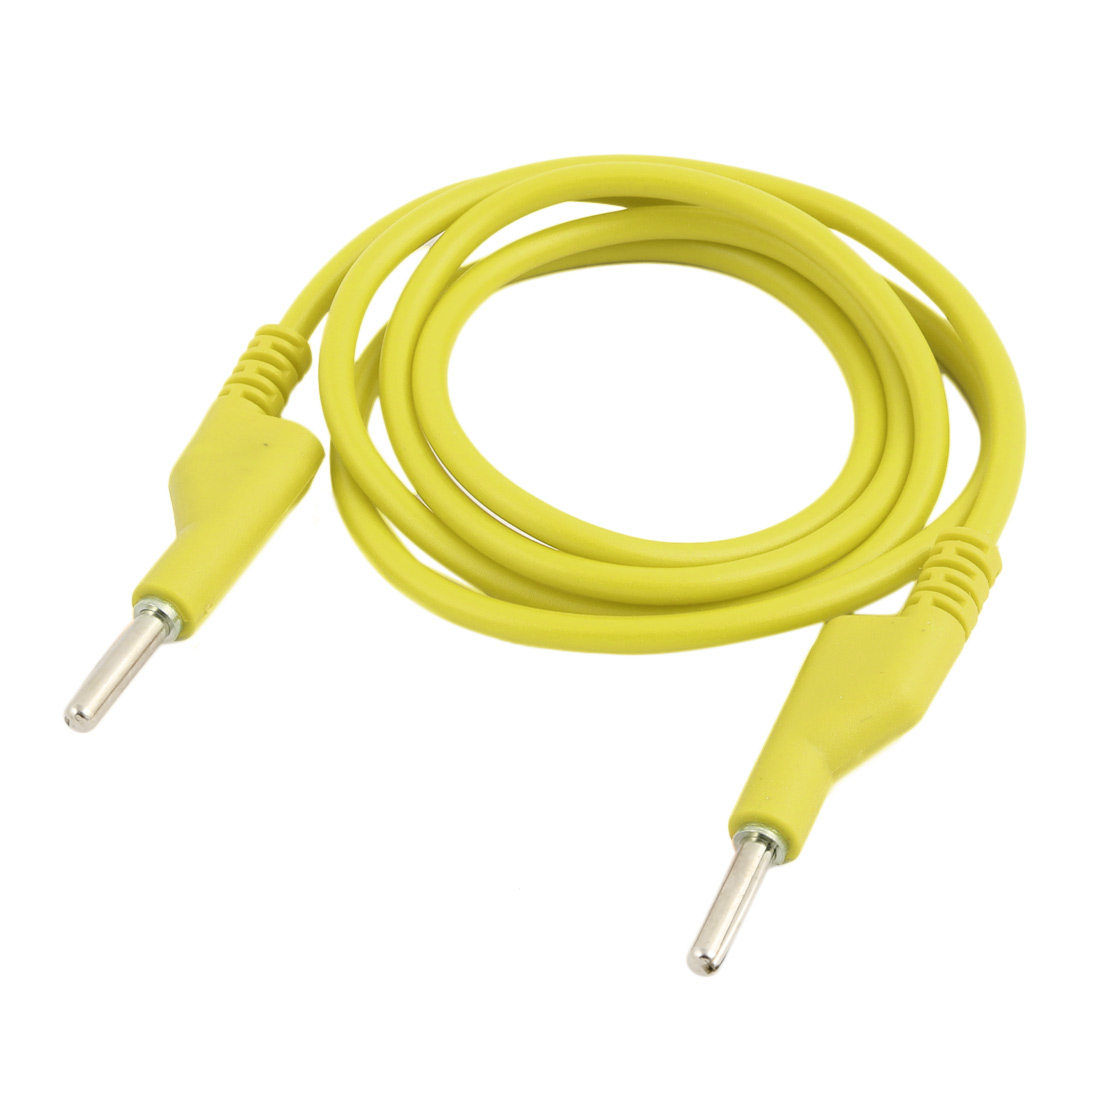 High Current Terminal Connector Cable Jumper Silicone Wire Test Leads 1m Length Yellow